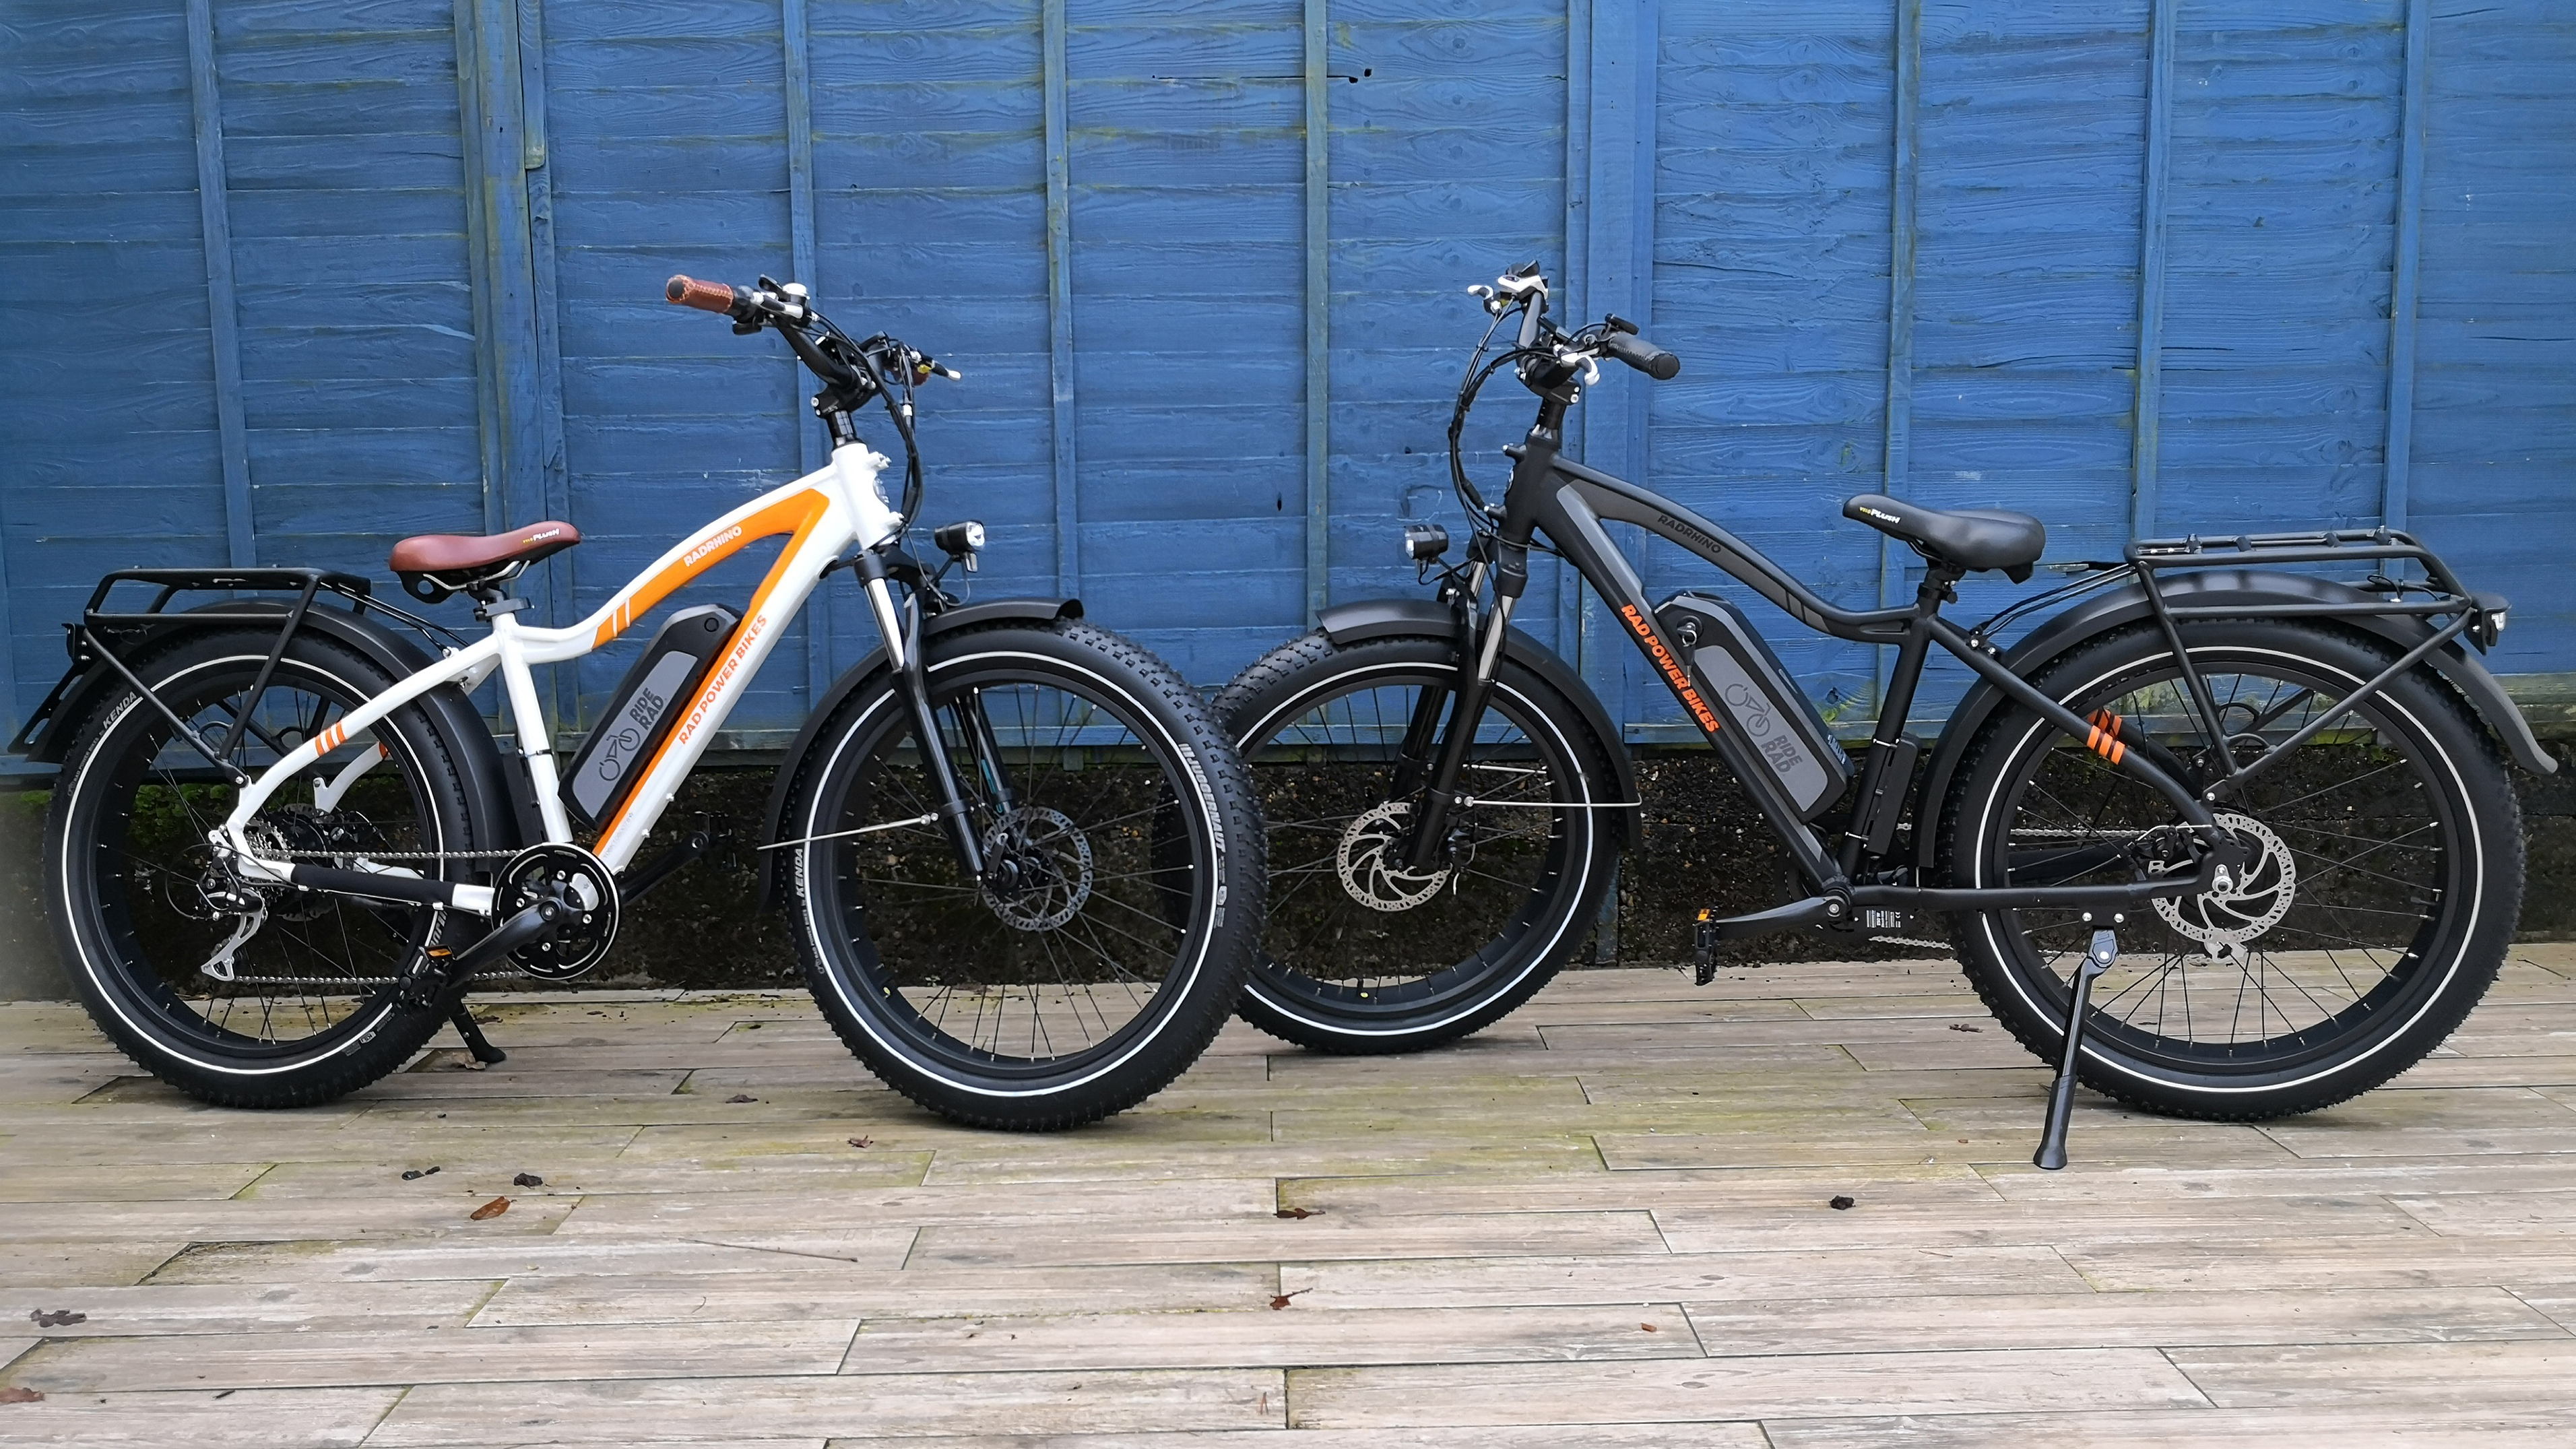 Rad Power Bikes' new RadRhino models deliver more power, on or off-road